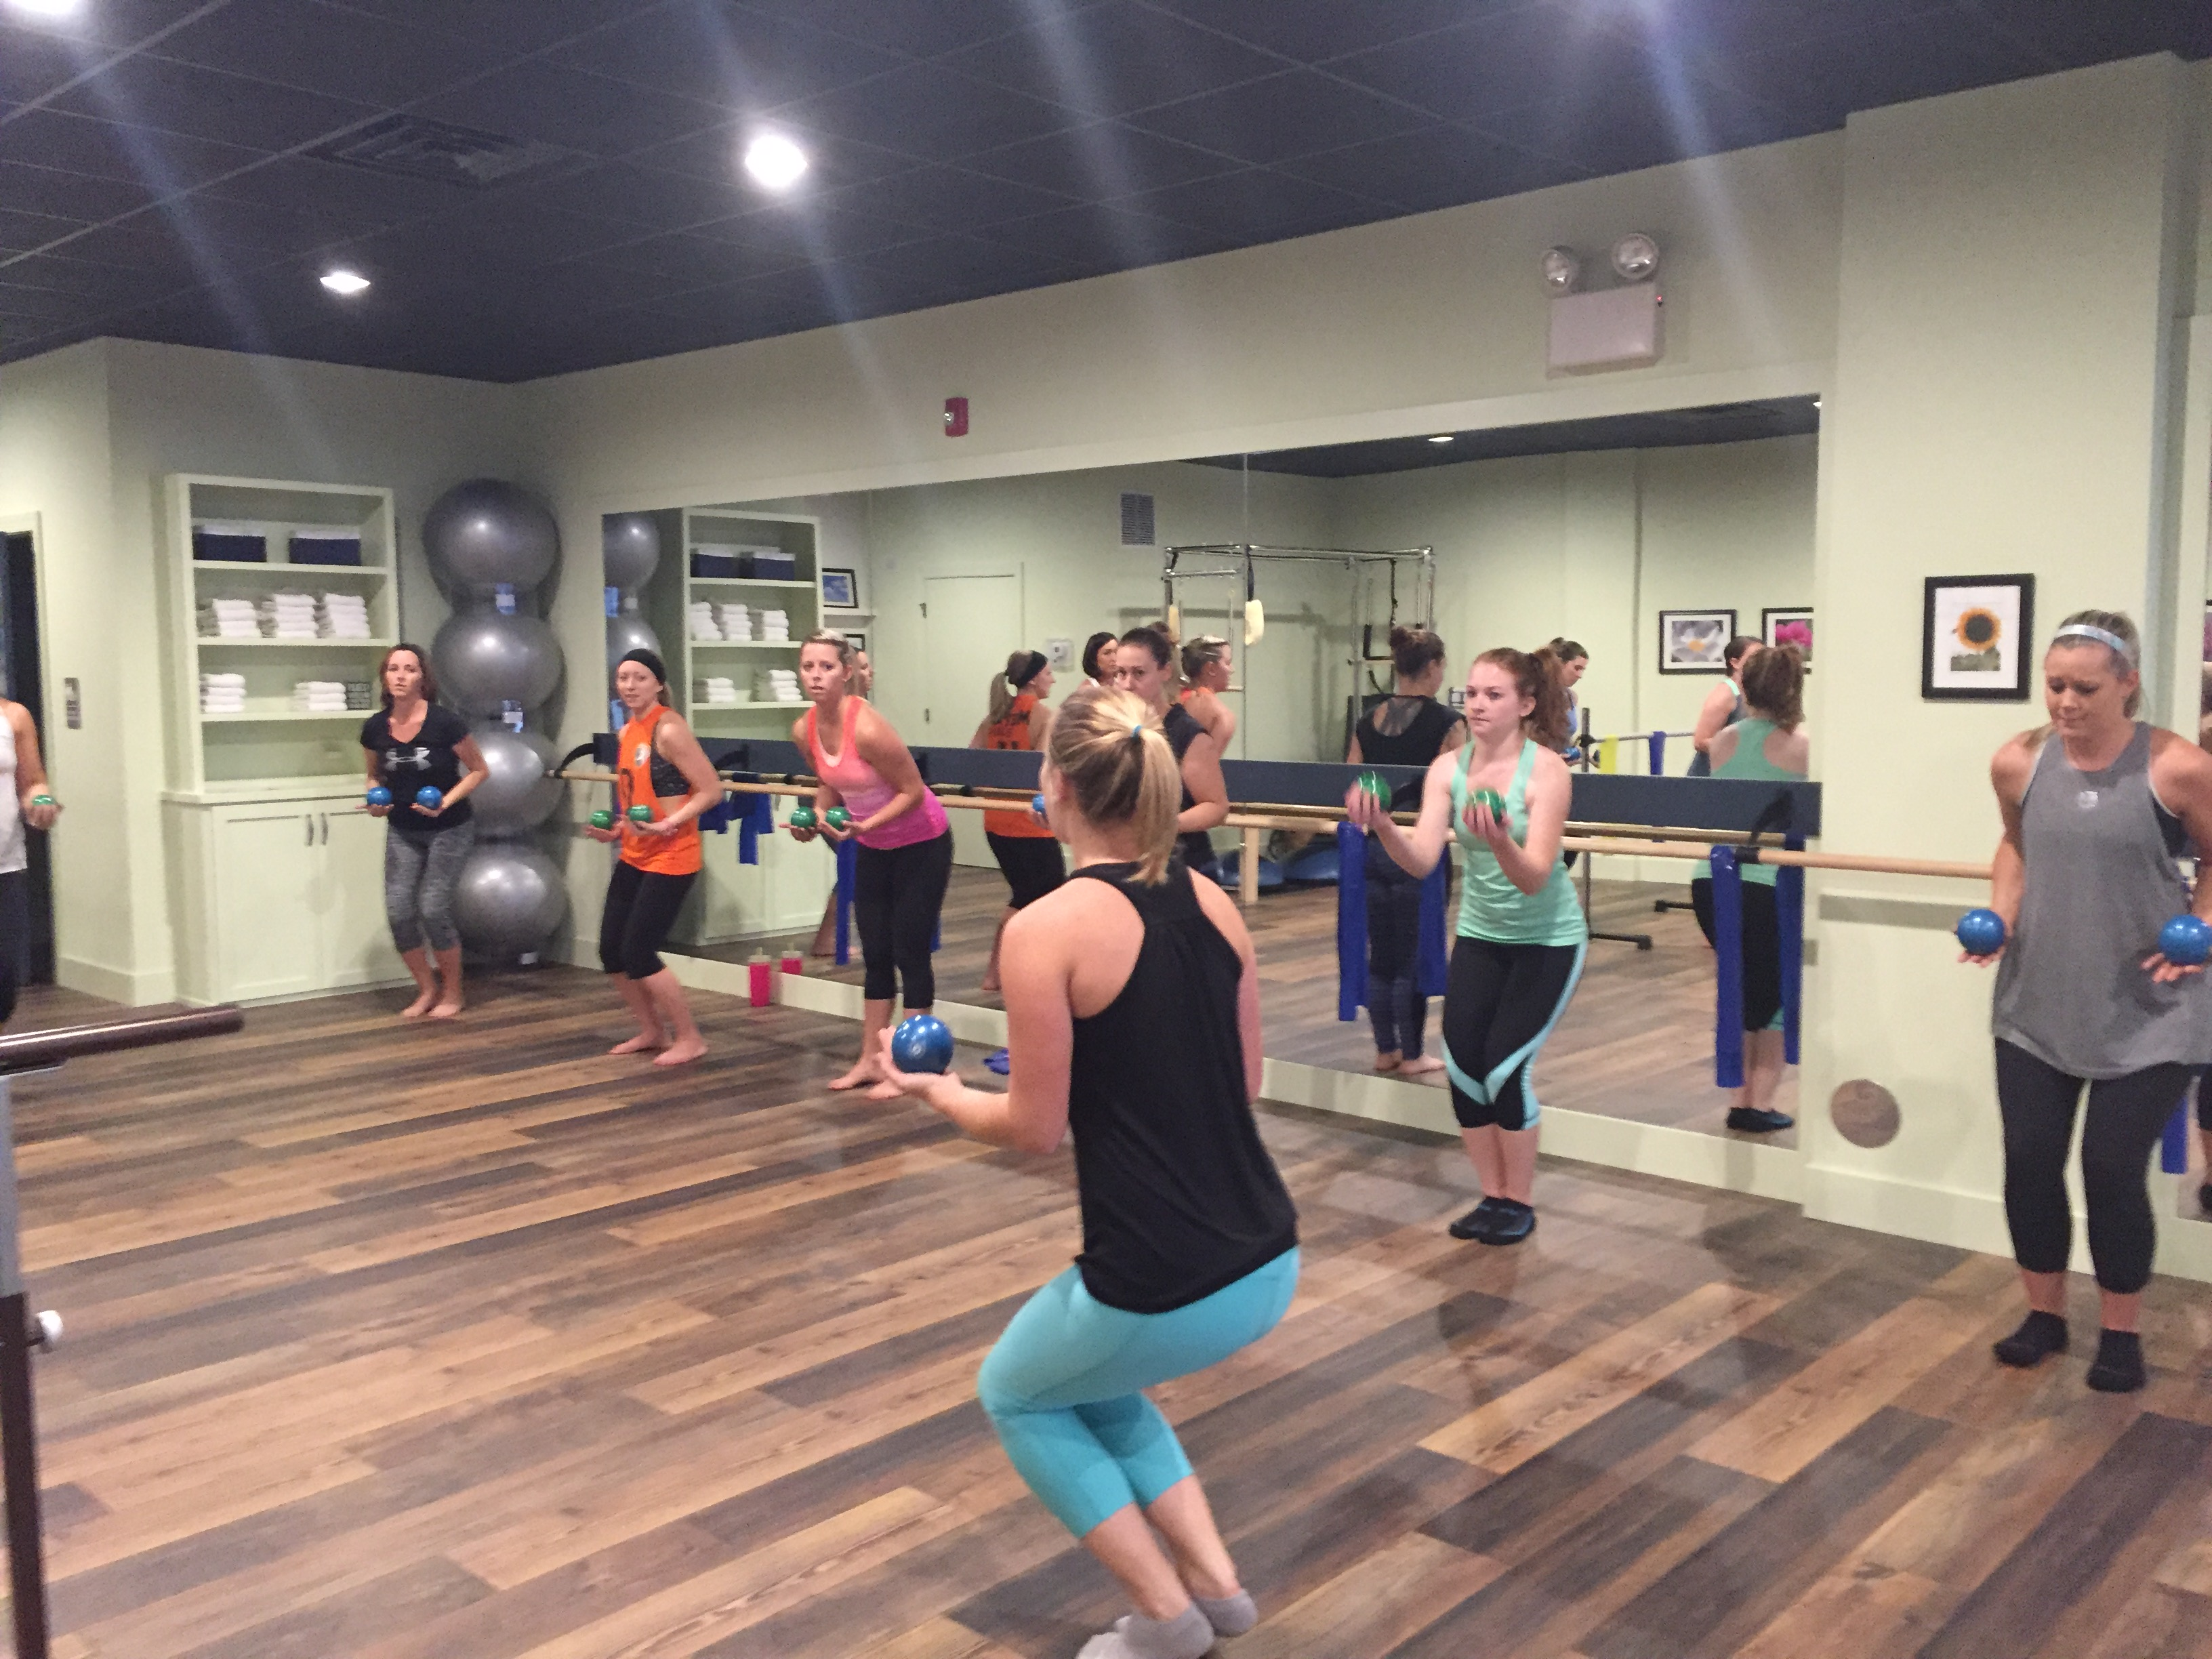 10 Thoughts I had During my First Barre Class